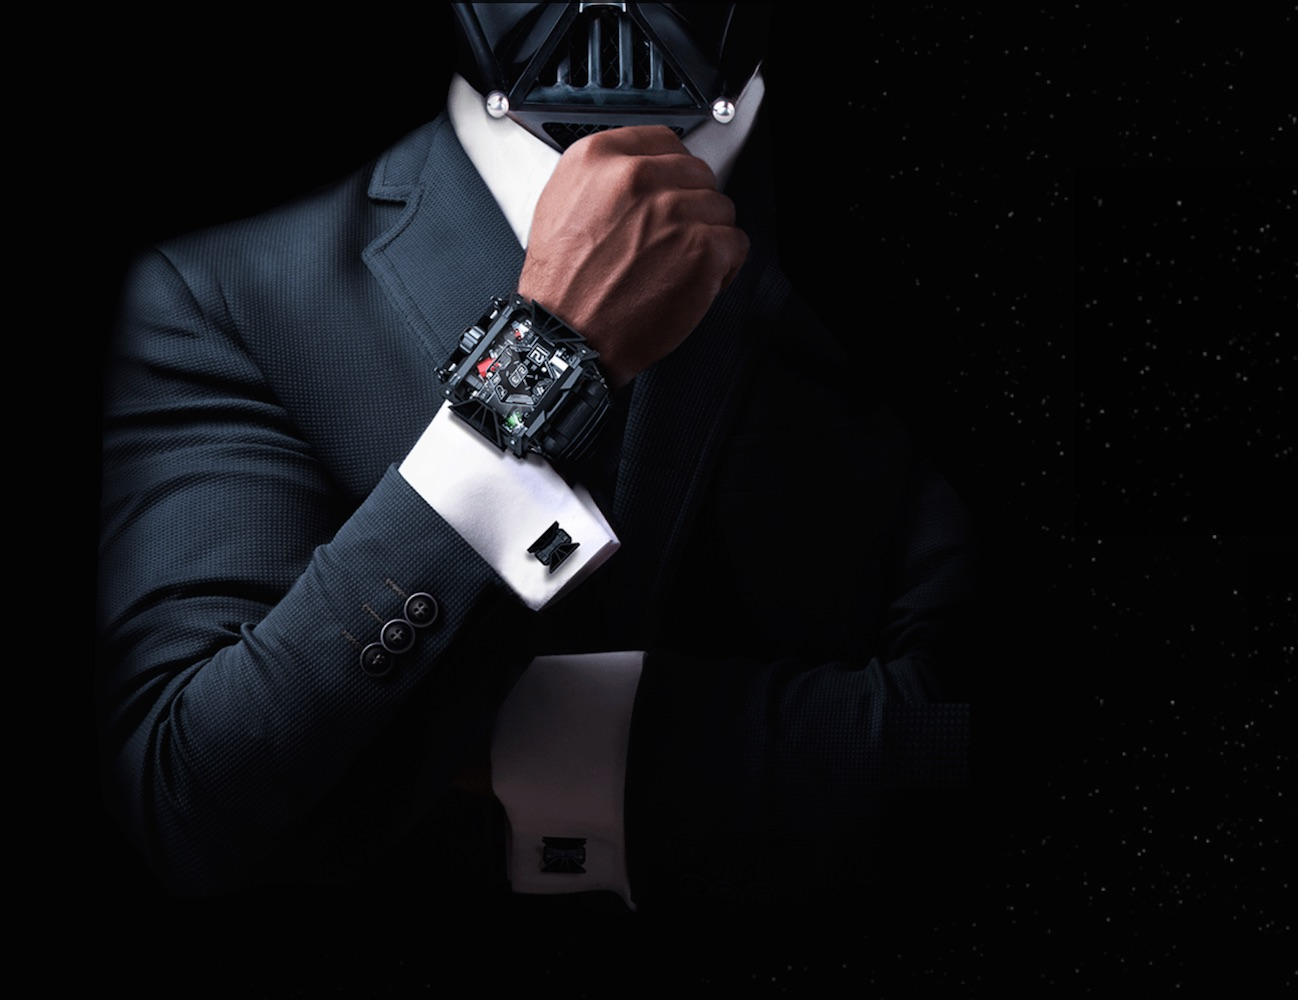 Darth Vader Inspired Watch